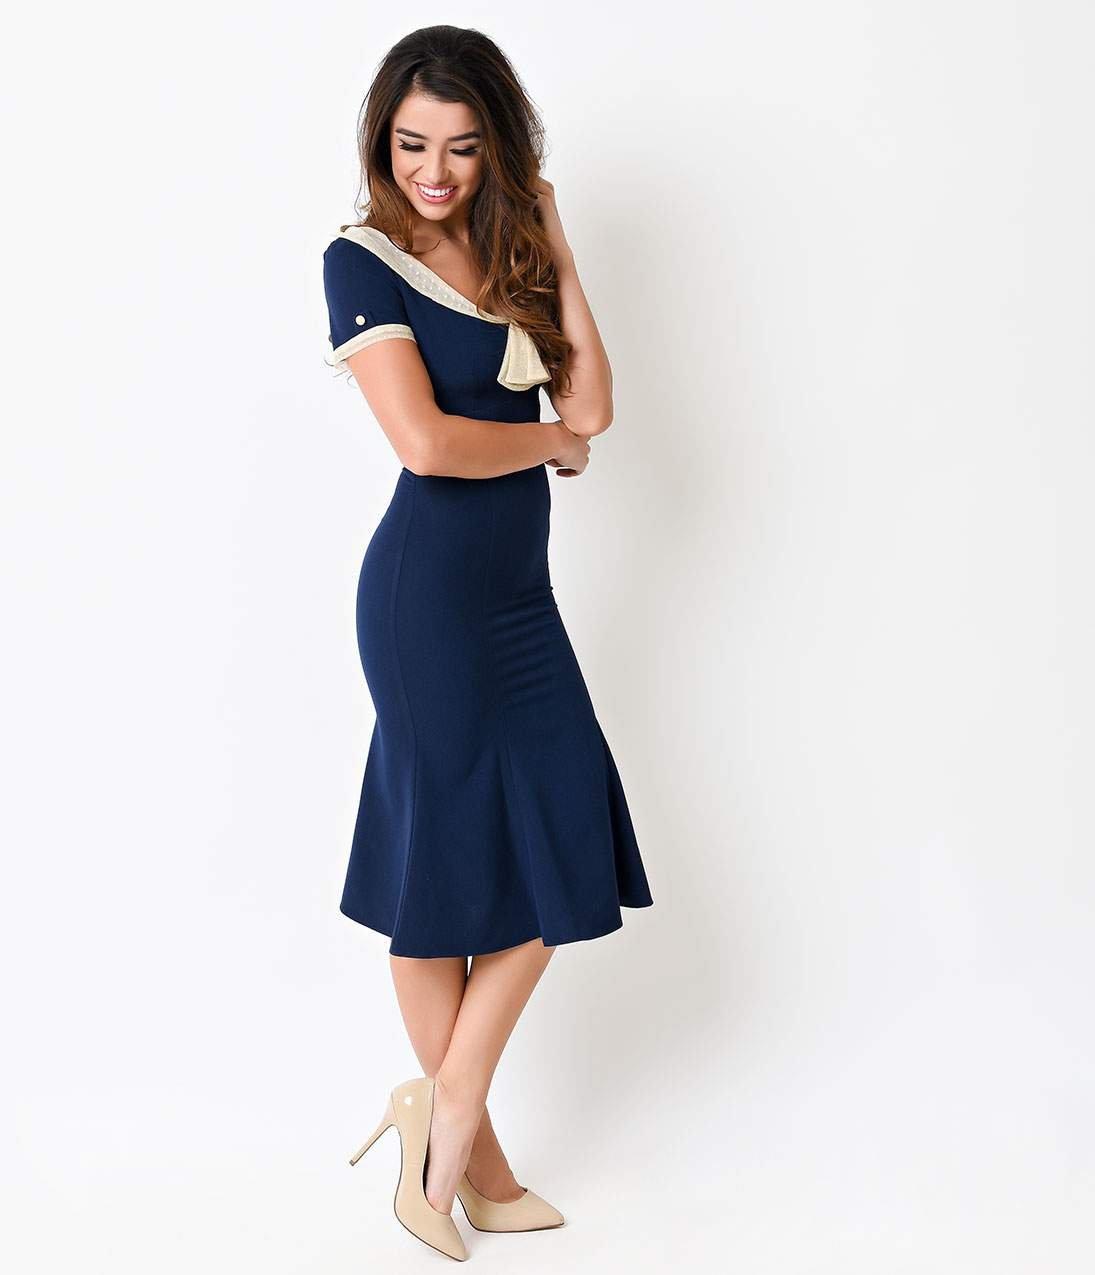 Swing Dance Clothing You Can Dance In Stop Staring 1930S Navy  Ivory Lace Cap Sleeve Railene Dress $168.00 AT vintagedancer.com